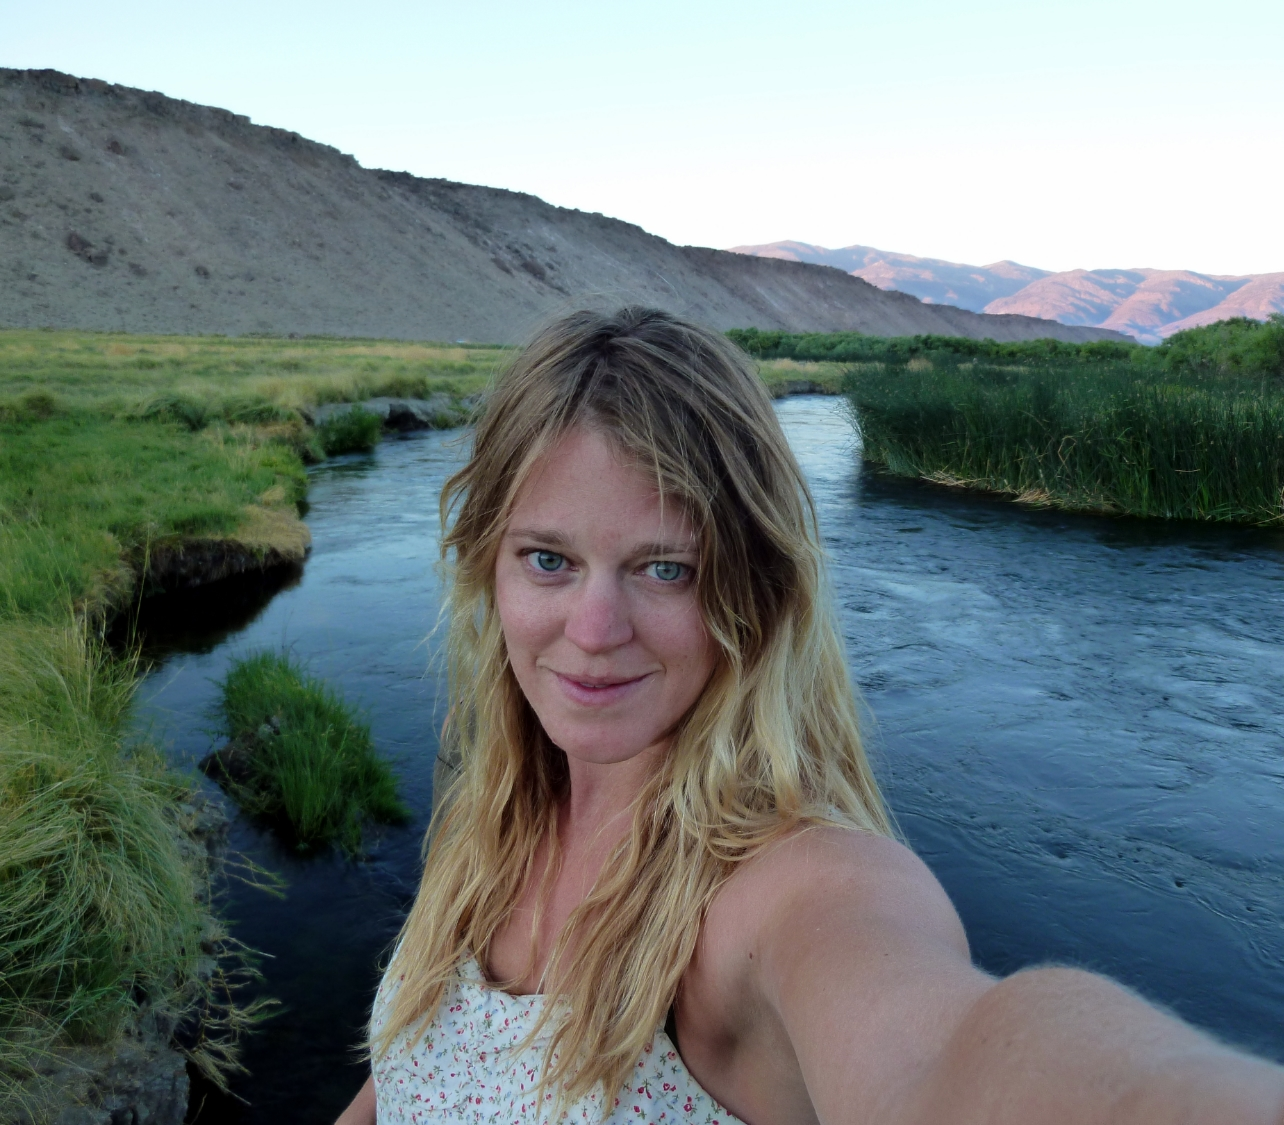 Abigail Sholl, founder of Av Elva Sol. In my favorite place, Owens River, Eastern Sierra, California.